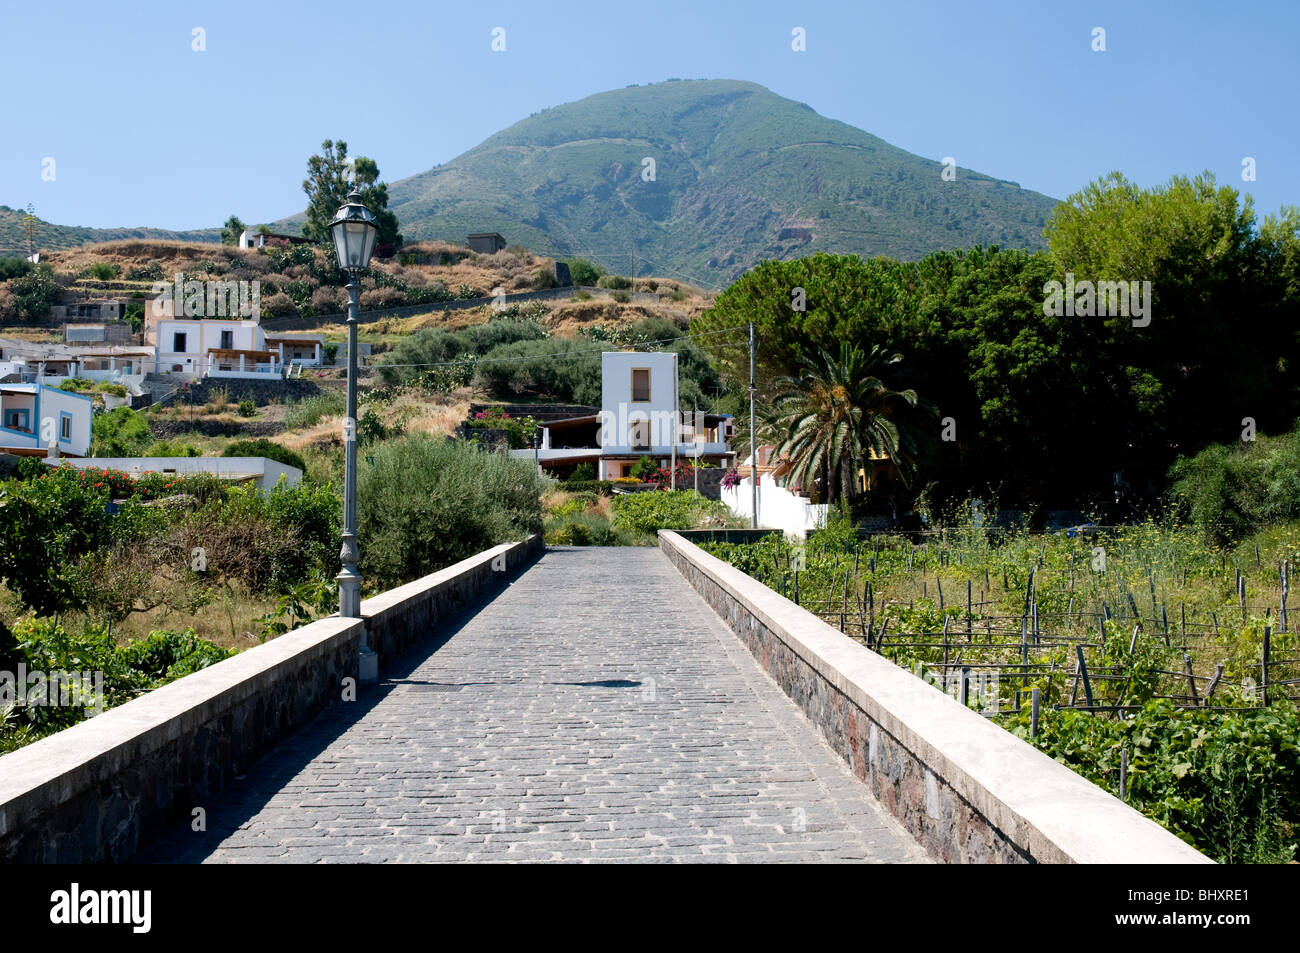 A view of the village of Lingua and the dormant volcano of Monte Fossa delle Felci, on the Aeolian island of Salina, - Stock Image